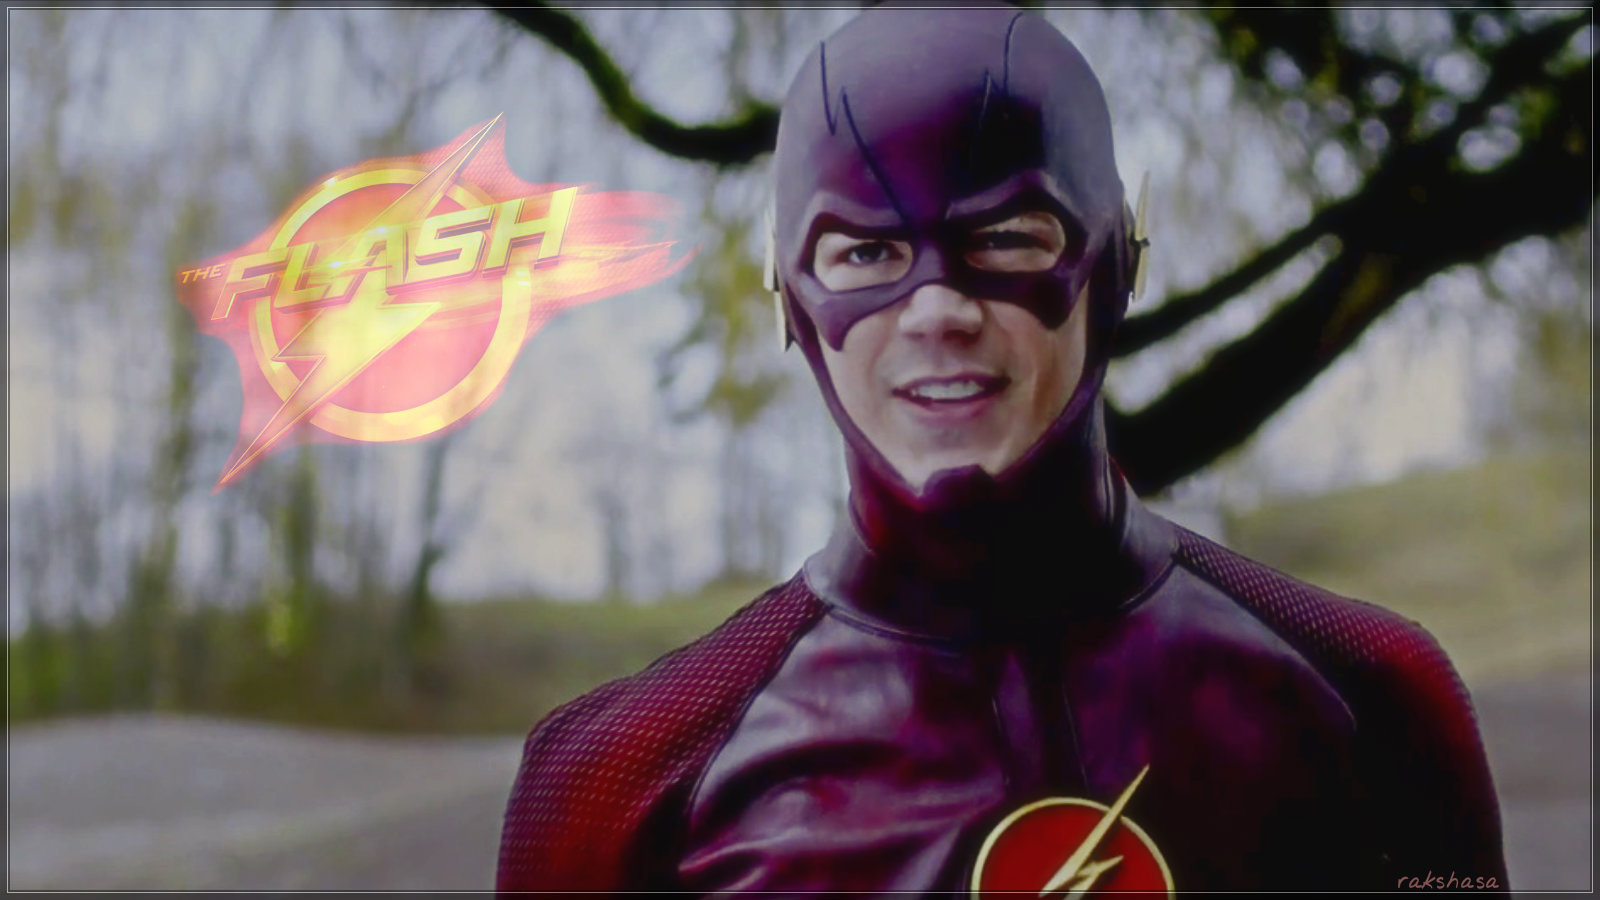 Flash Cw Wallpaper The flash cw the flash 1600x900